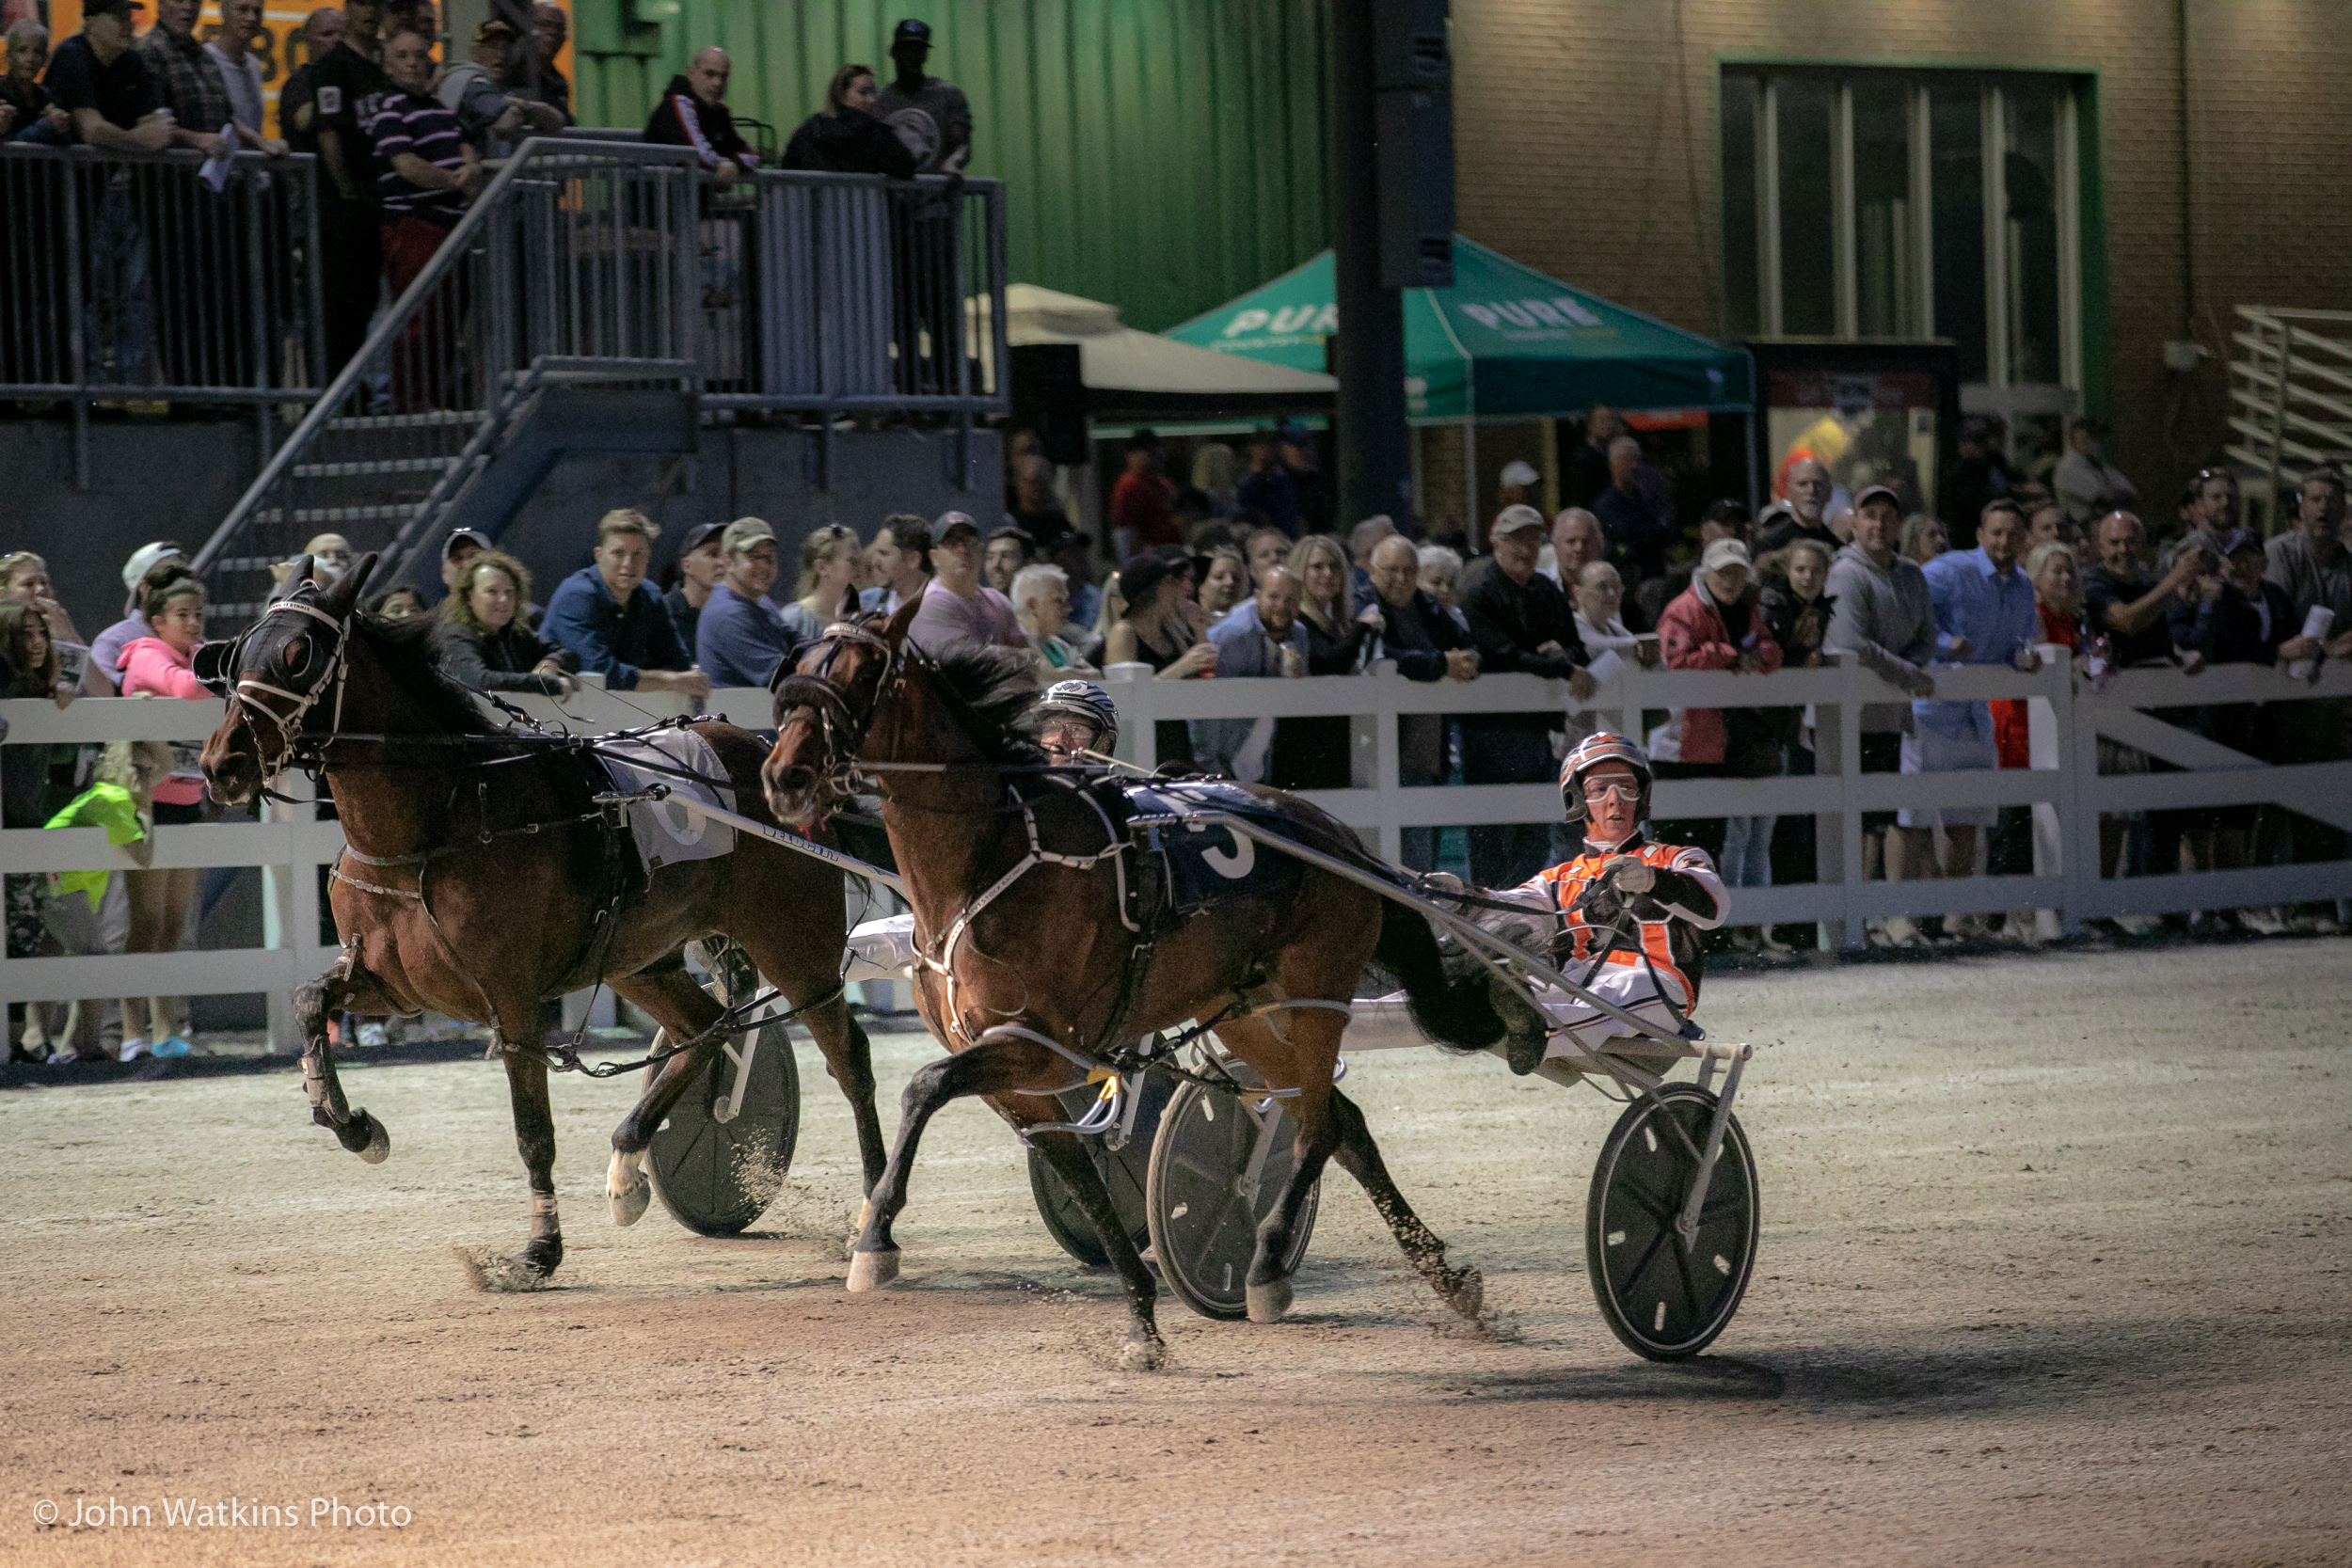 Live standardbred racing temporarily halted in Ontario; Ontario Racing to continue providing regular industry updates, news, features and more